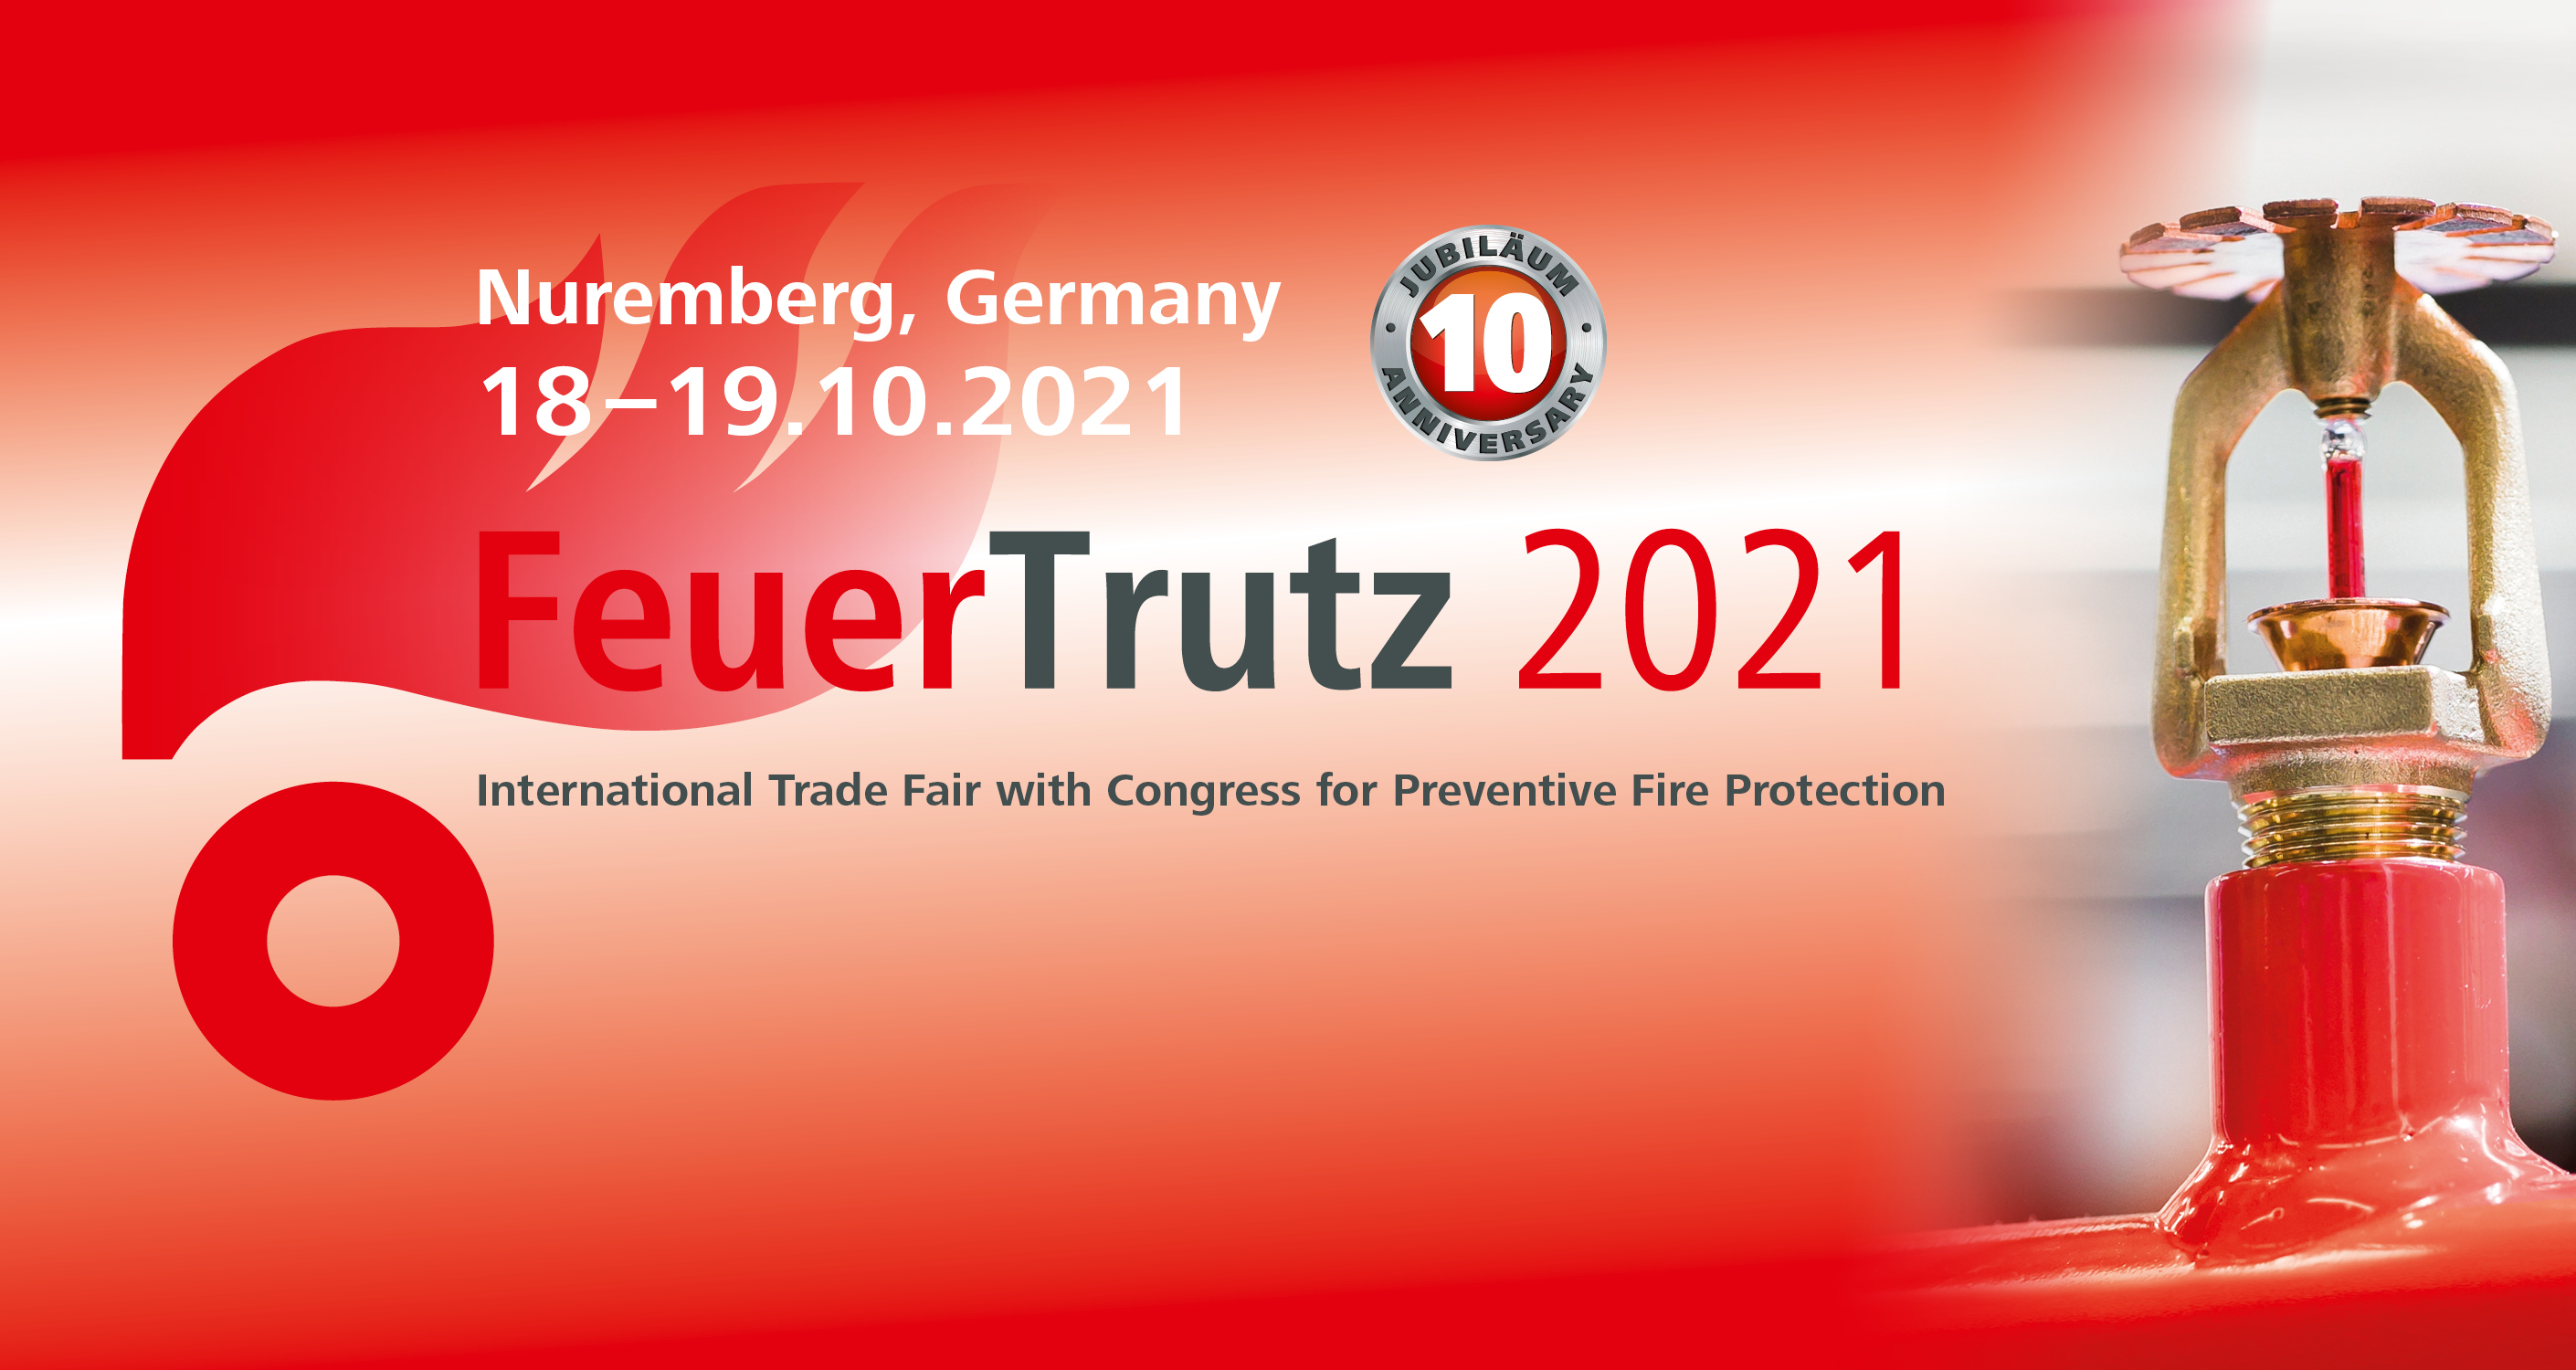 FeuerTrutz 2021 - The leading international exhibition for preventive fire protection